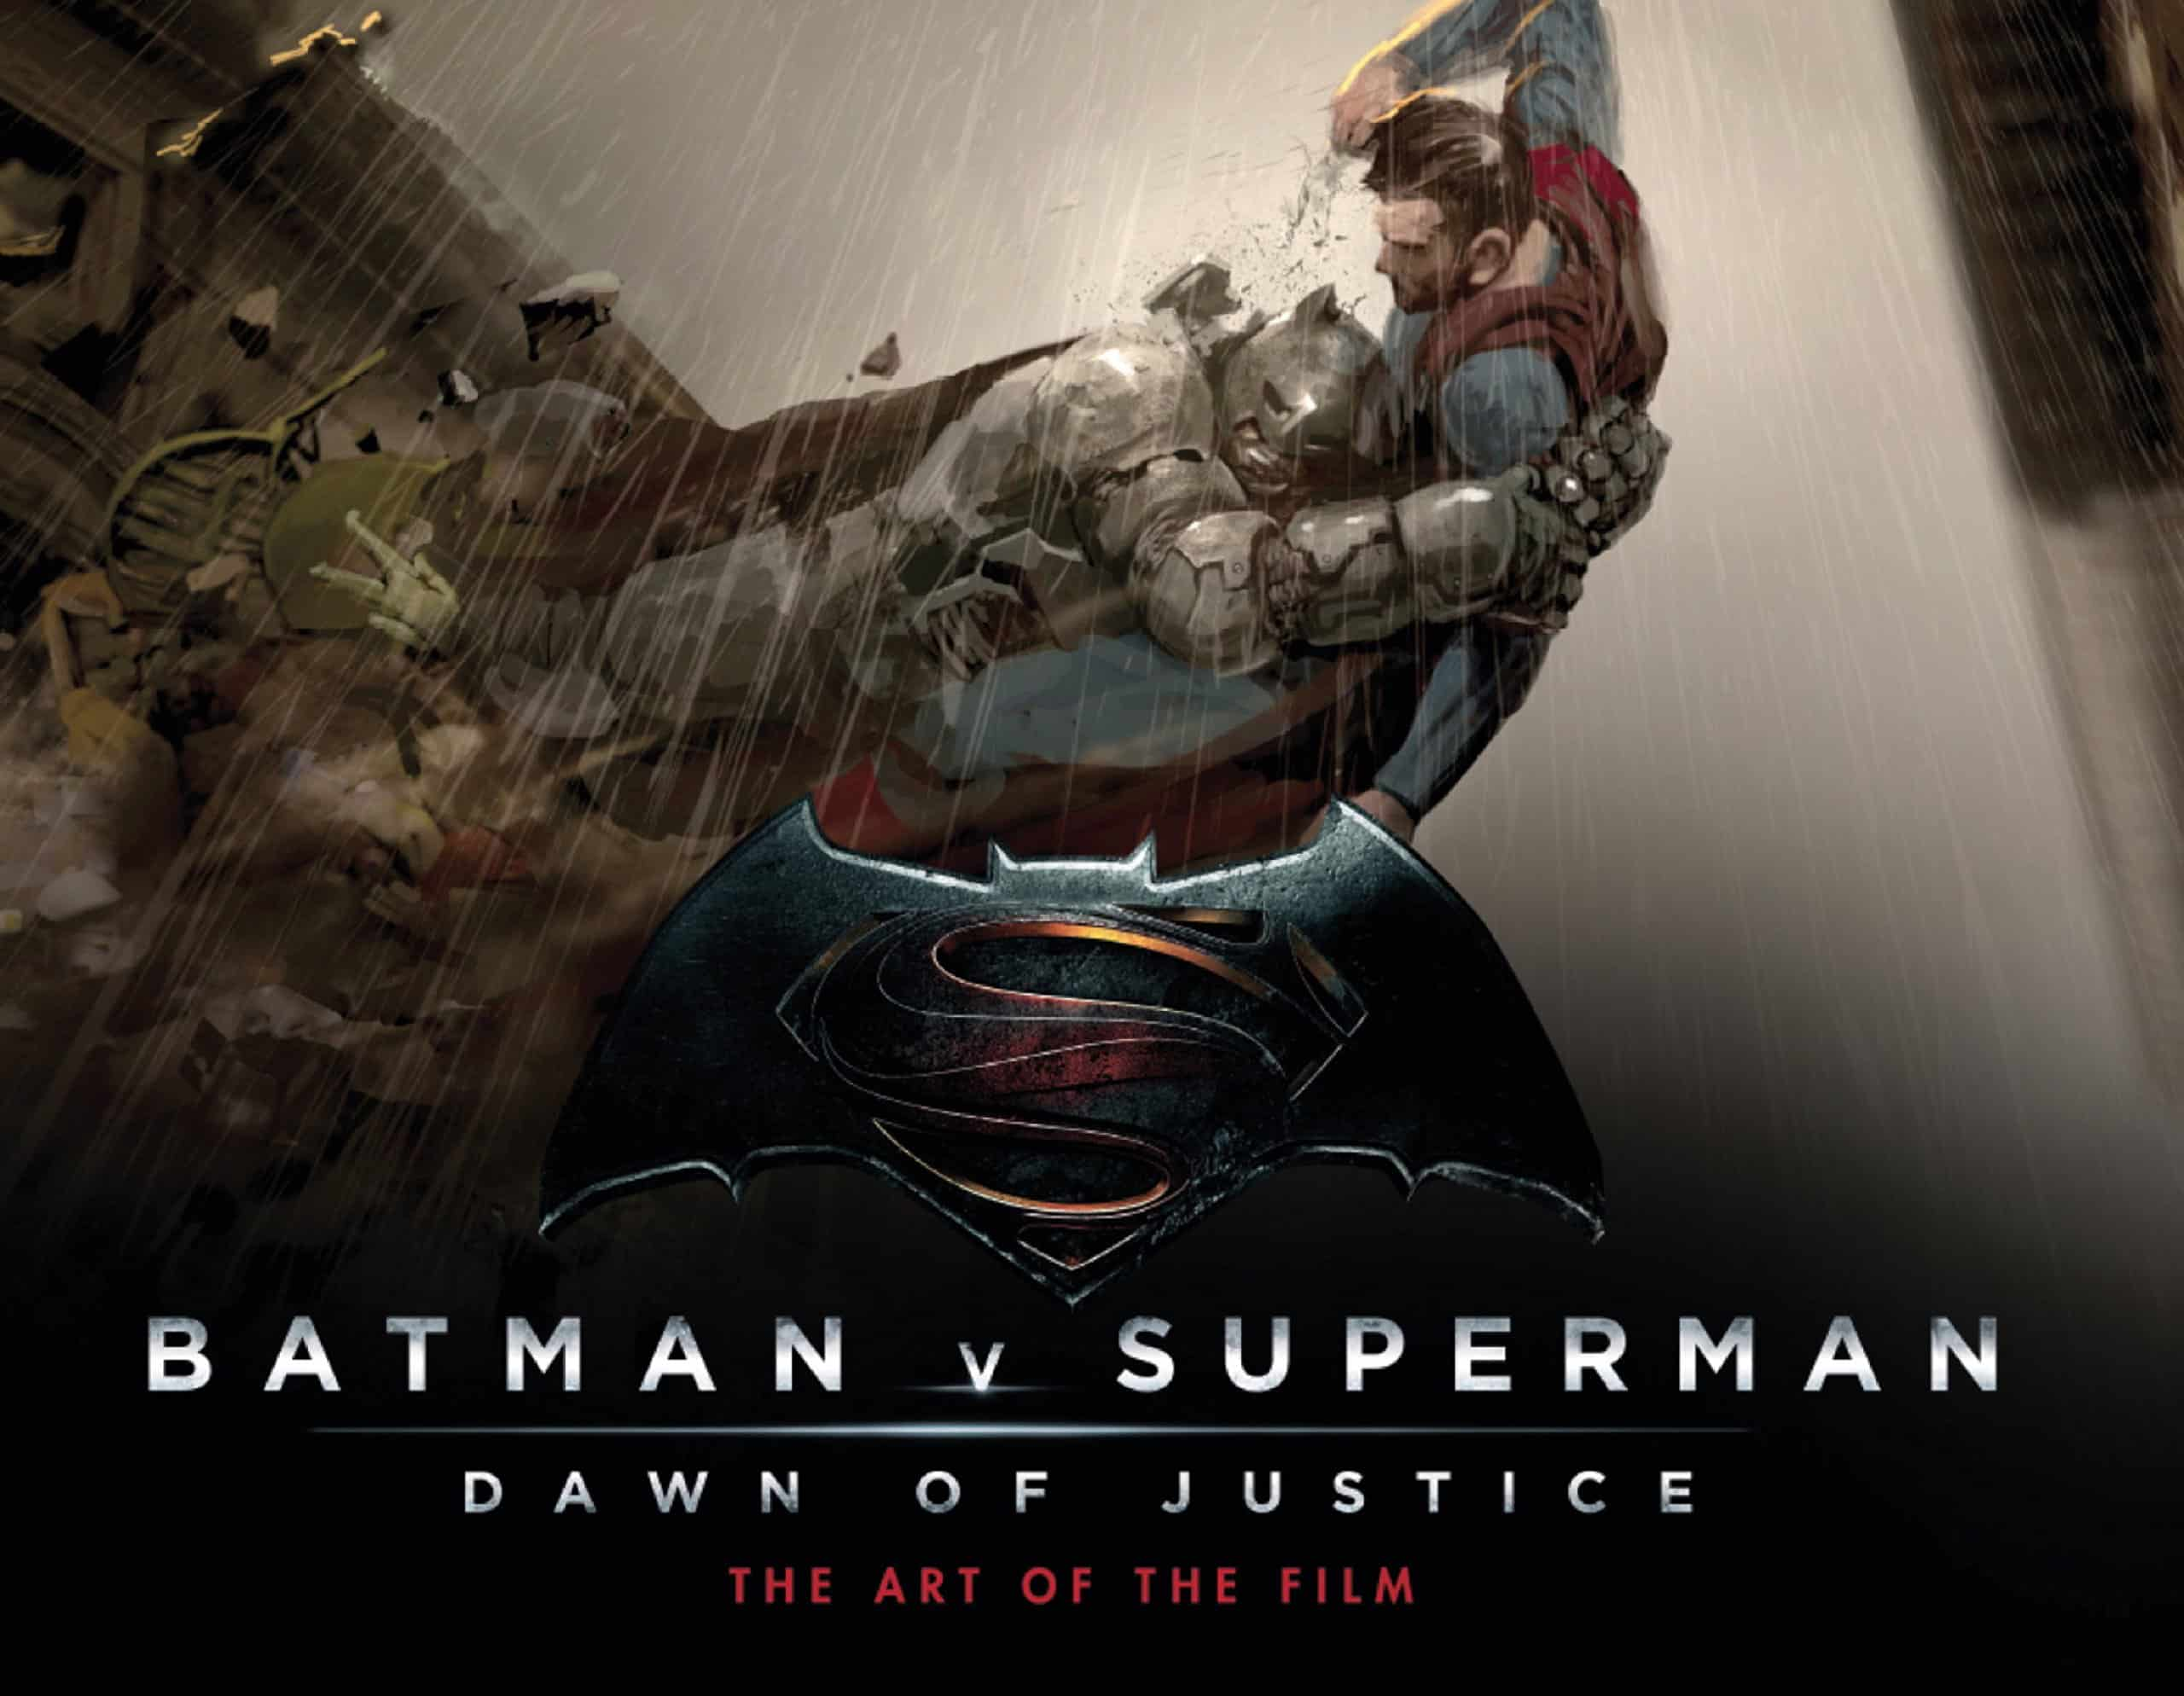 Batman v Superman: Dawn of Justice: The Art of the Film (Englisch) Gebundenes Buch für 15,04€